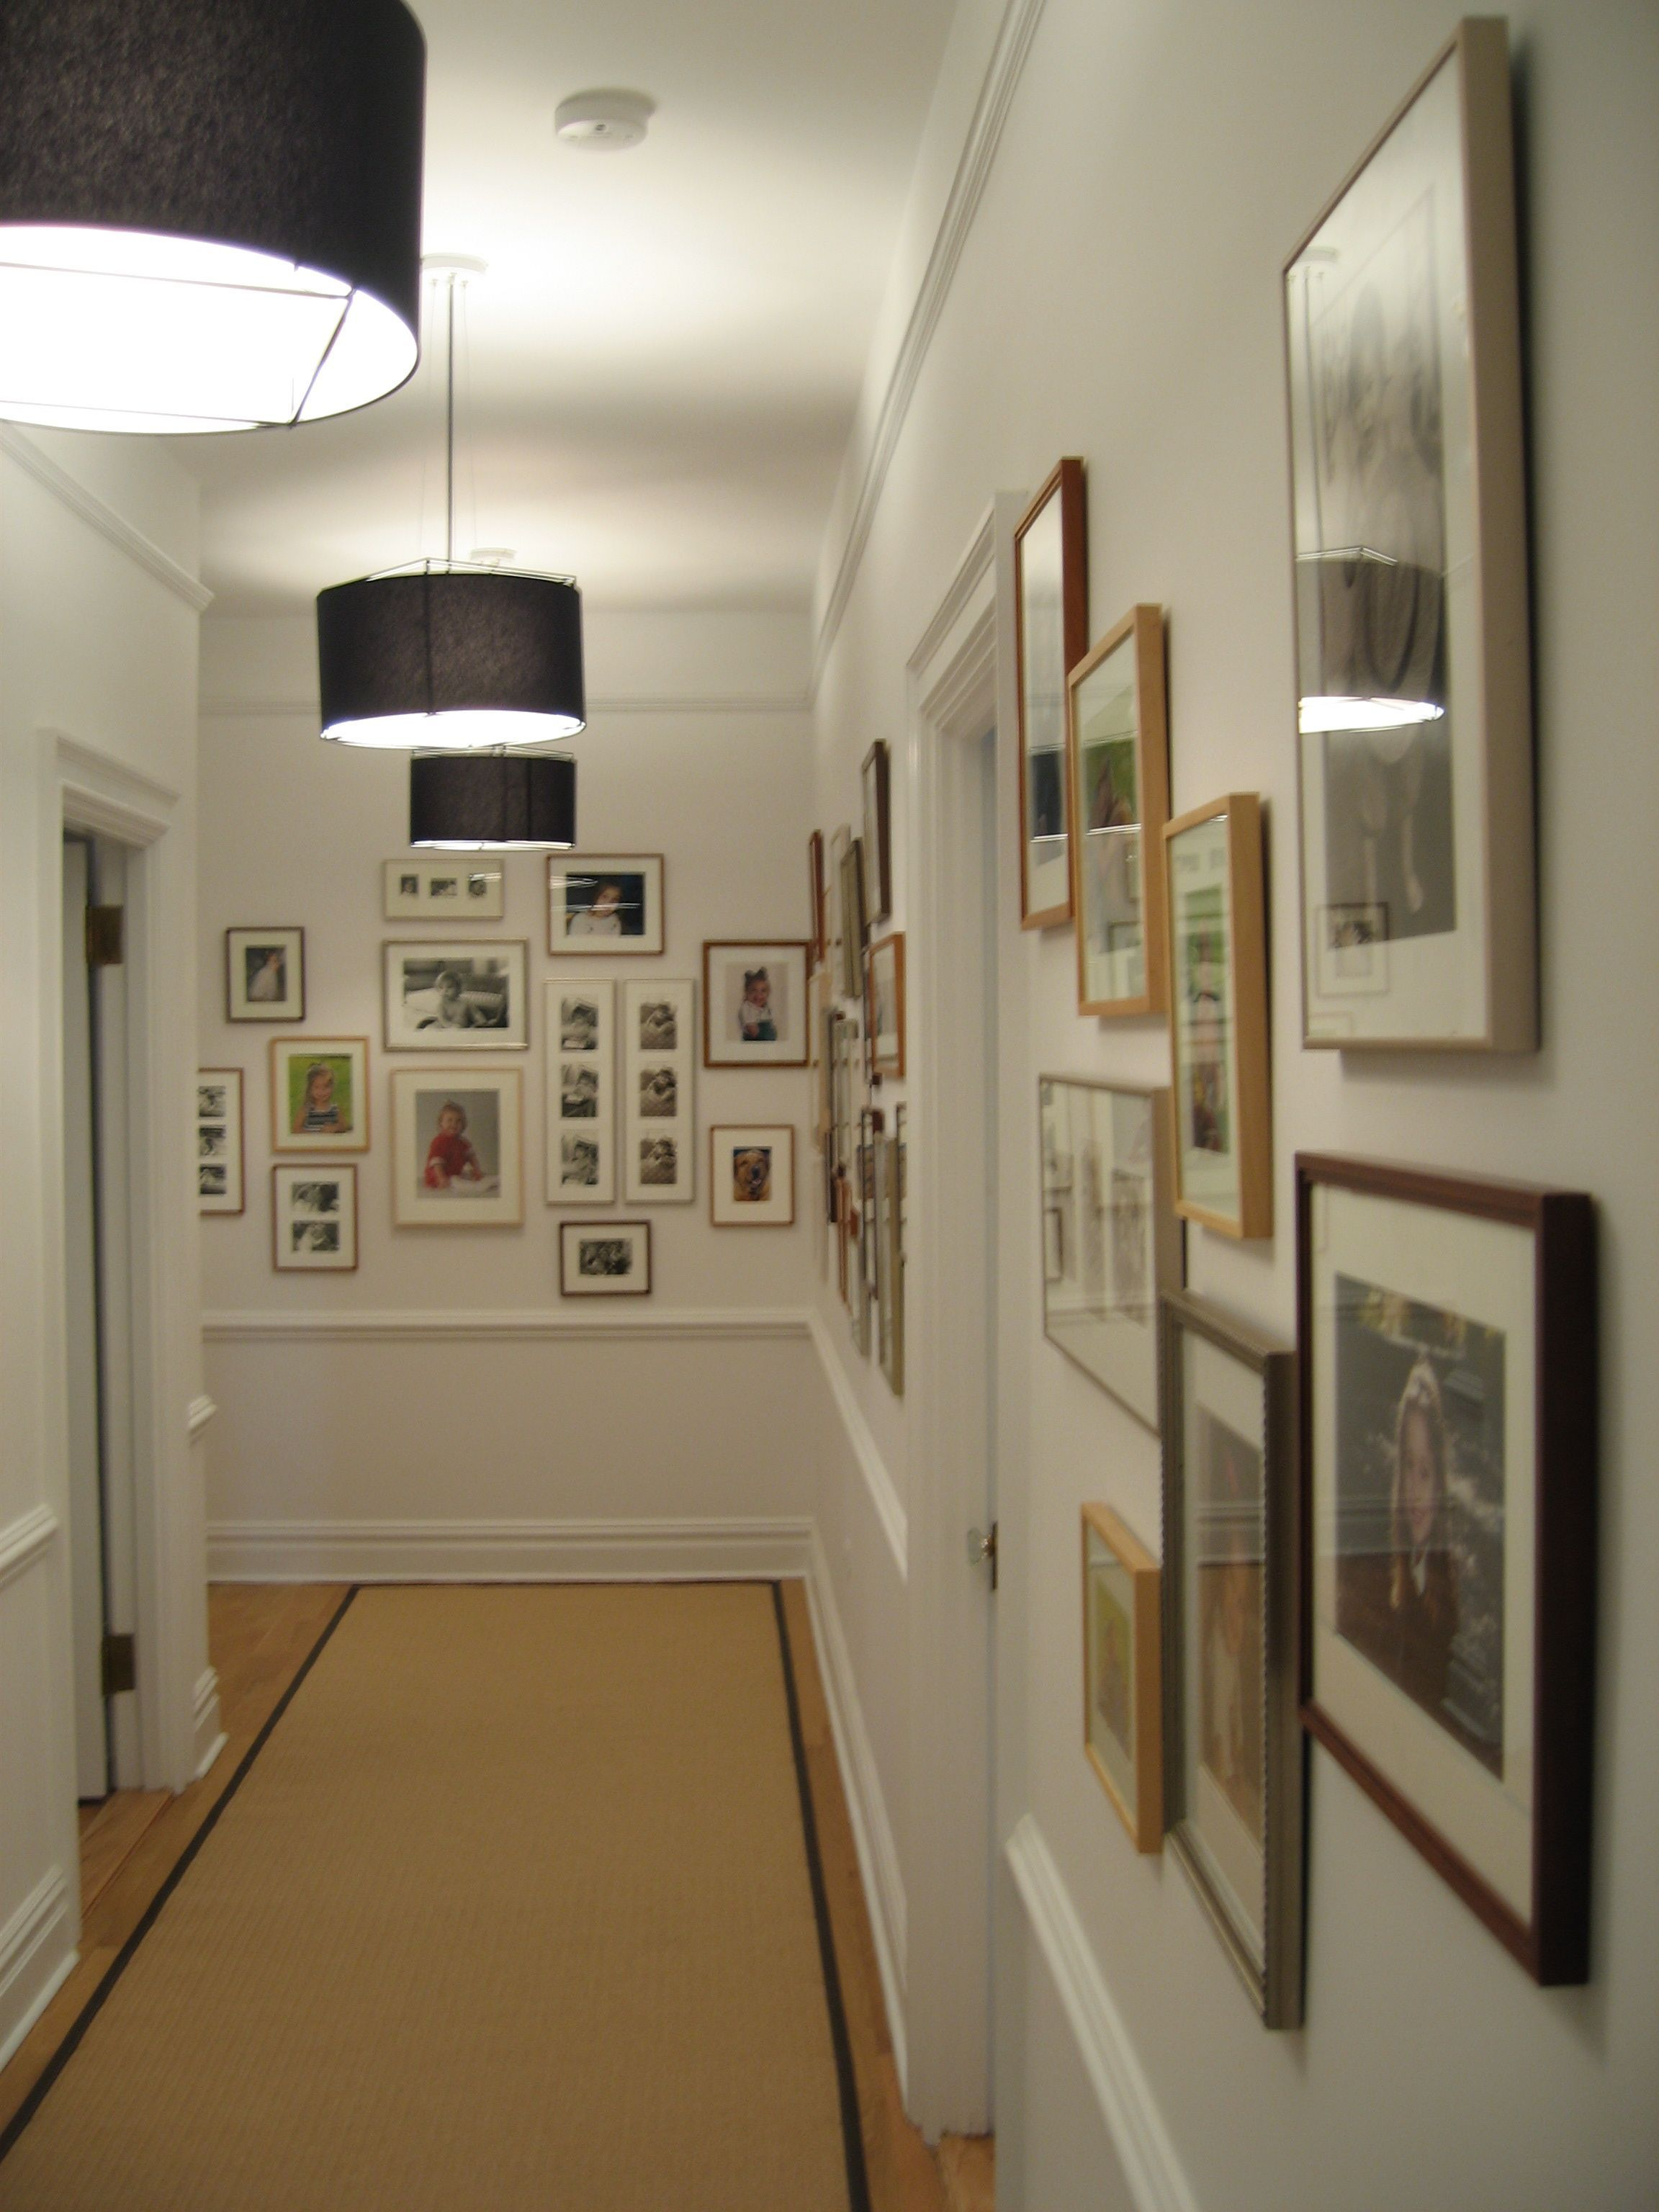 Hallway Becomes The Inevitable Part Of A Building Home School